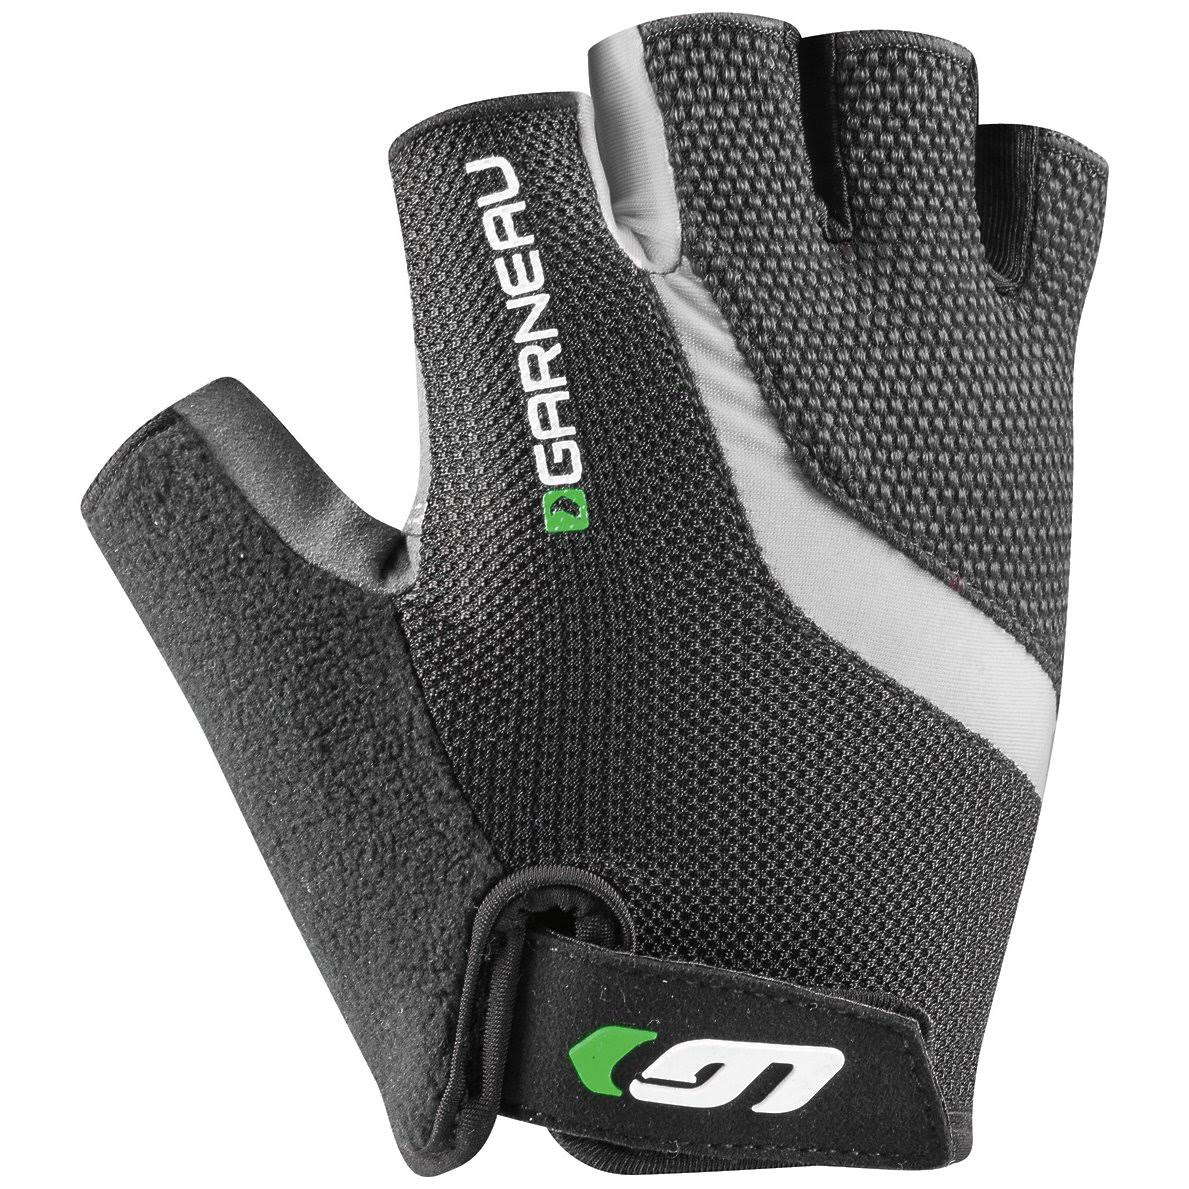 Louis Garneau Men's Biogel RX-V Cycling Gloves Grey / Green XL